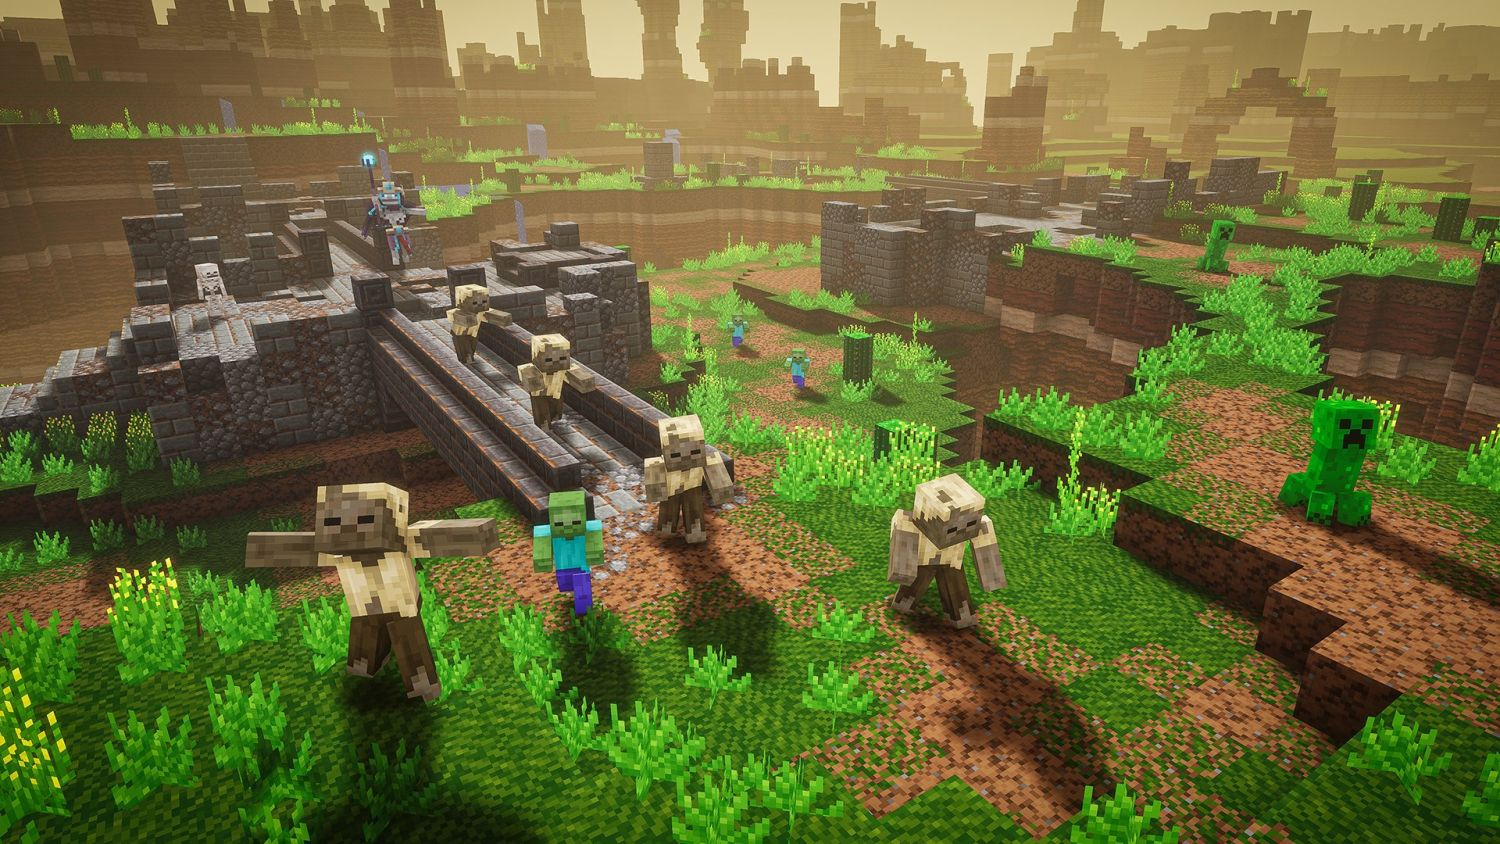 Minecraft gets PSVR support in free update this month